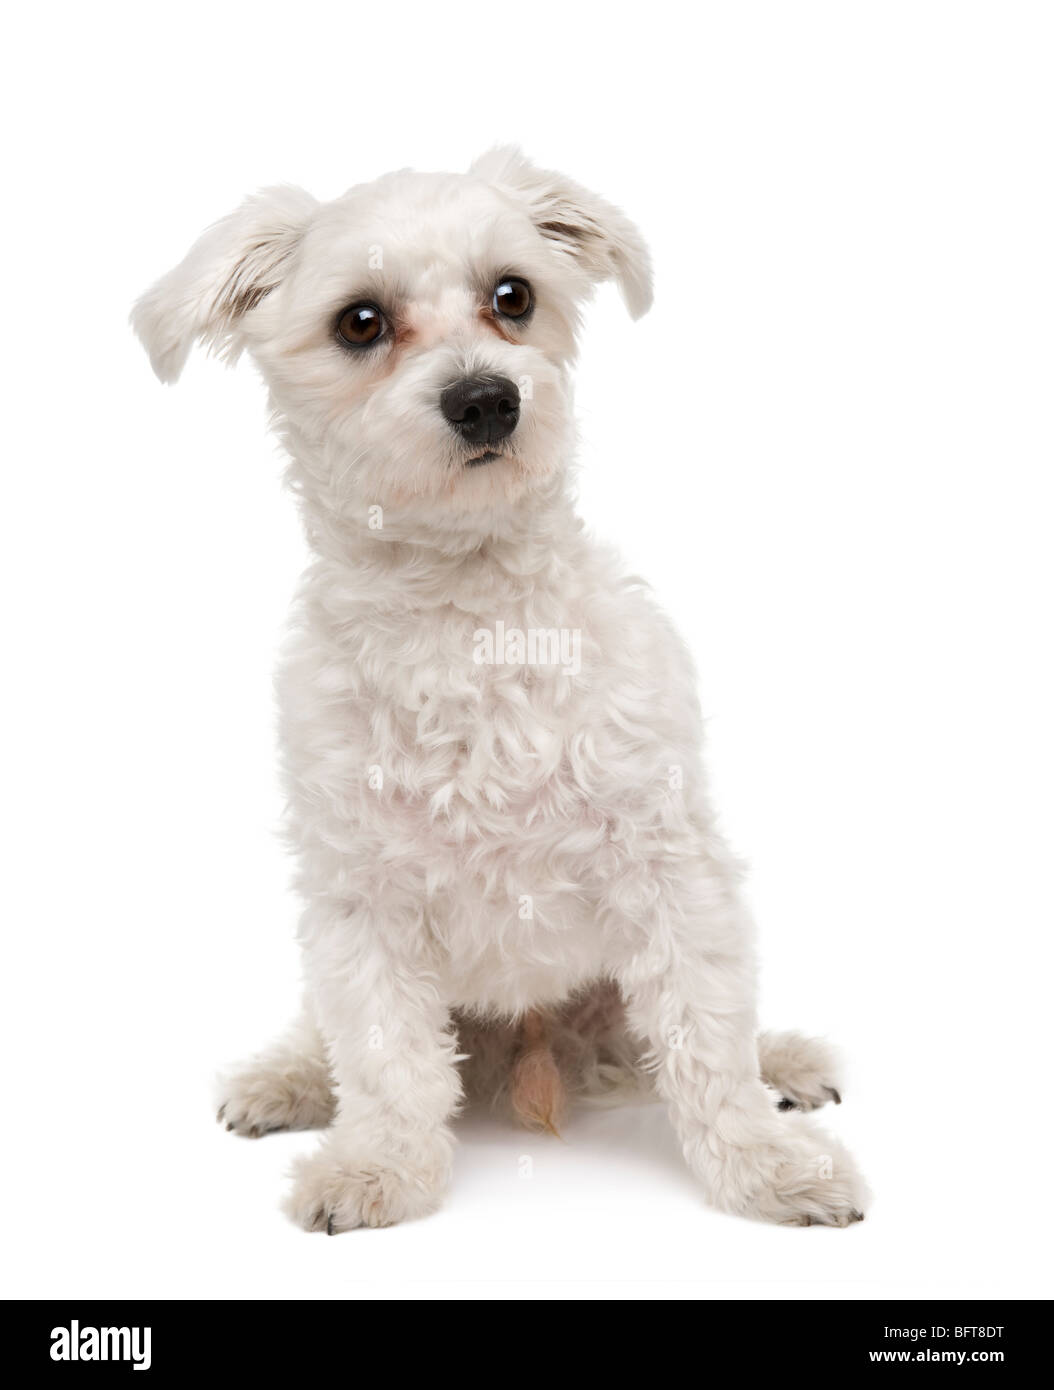 Maltese dog, 1 year old, sitting in front of a white background, studio shot - Stock Image